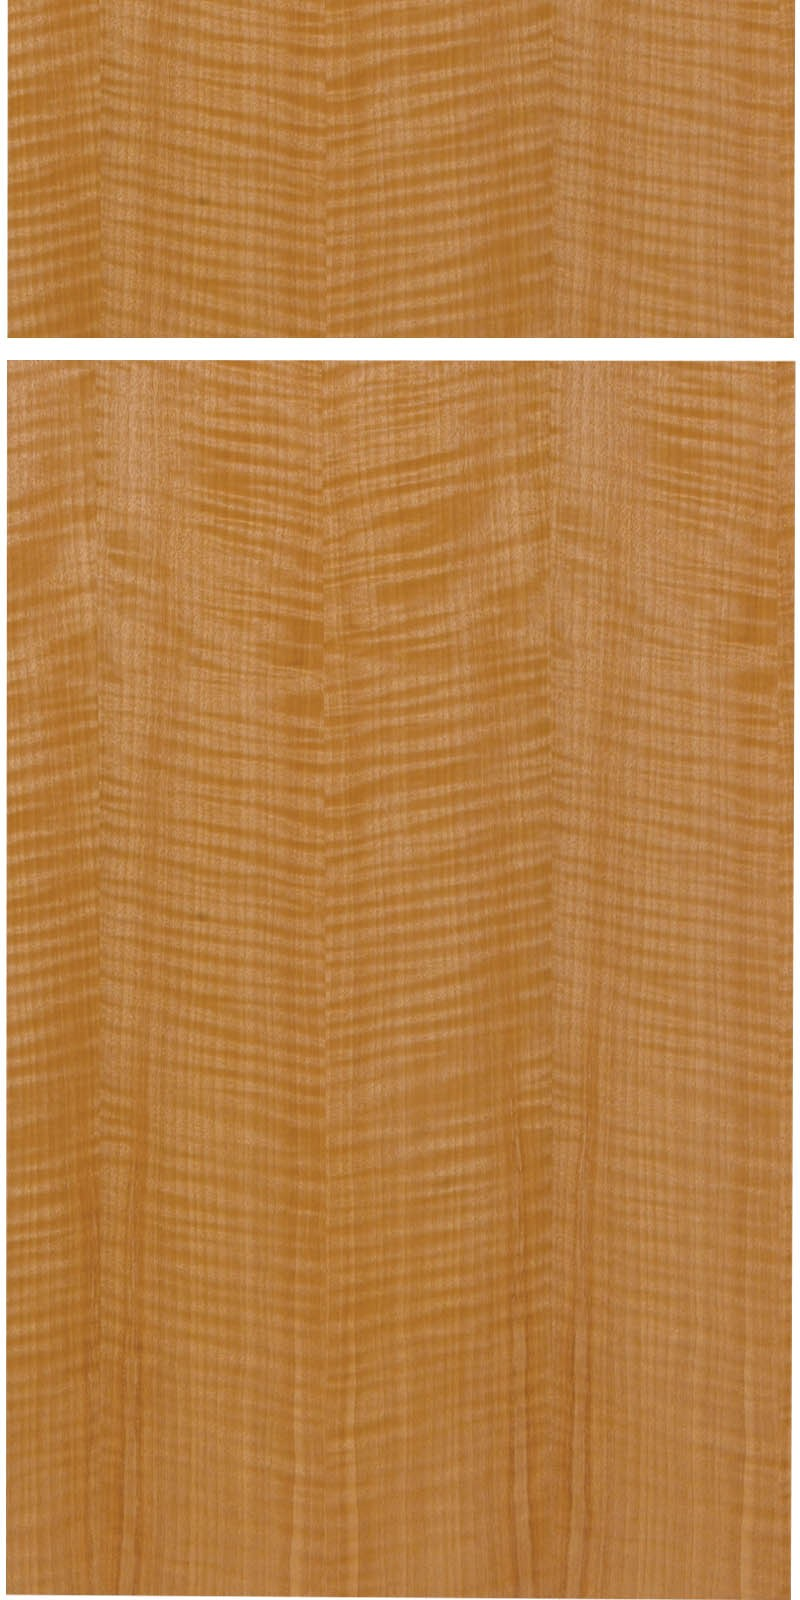 Wood Veneer Cabinet Doors Wood Veneer Materials Cabinet Doors Drawer Fronts Products